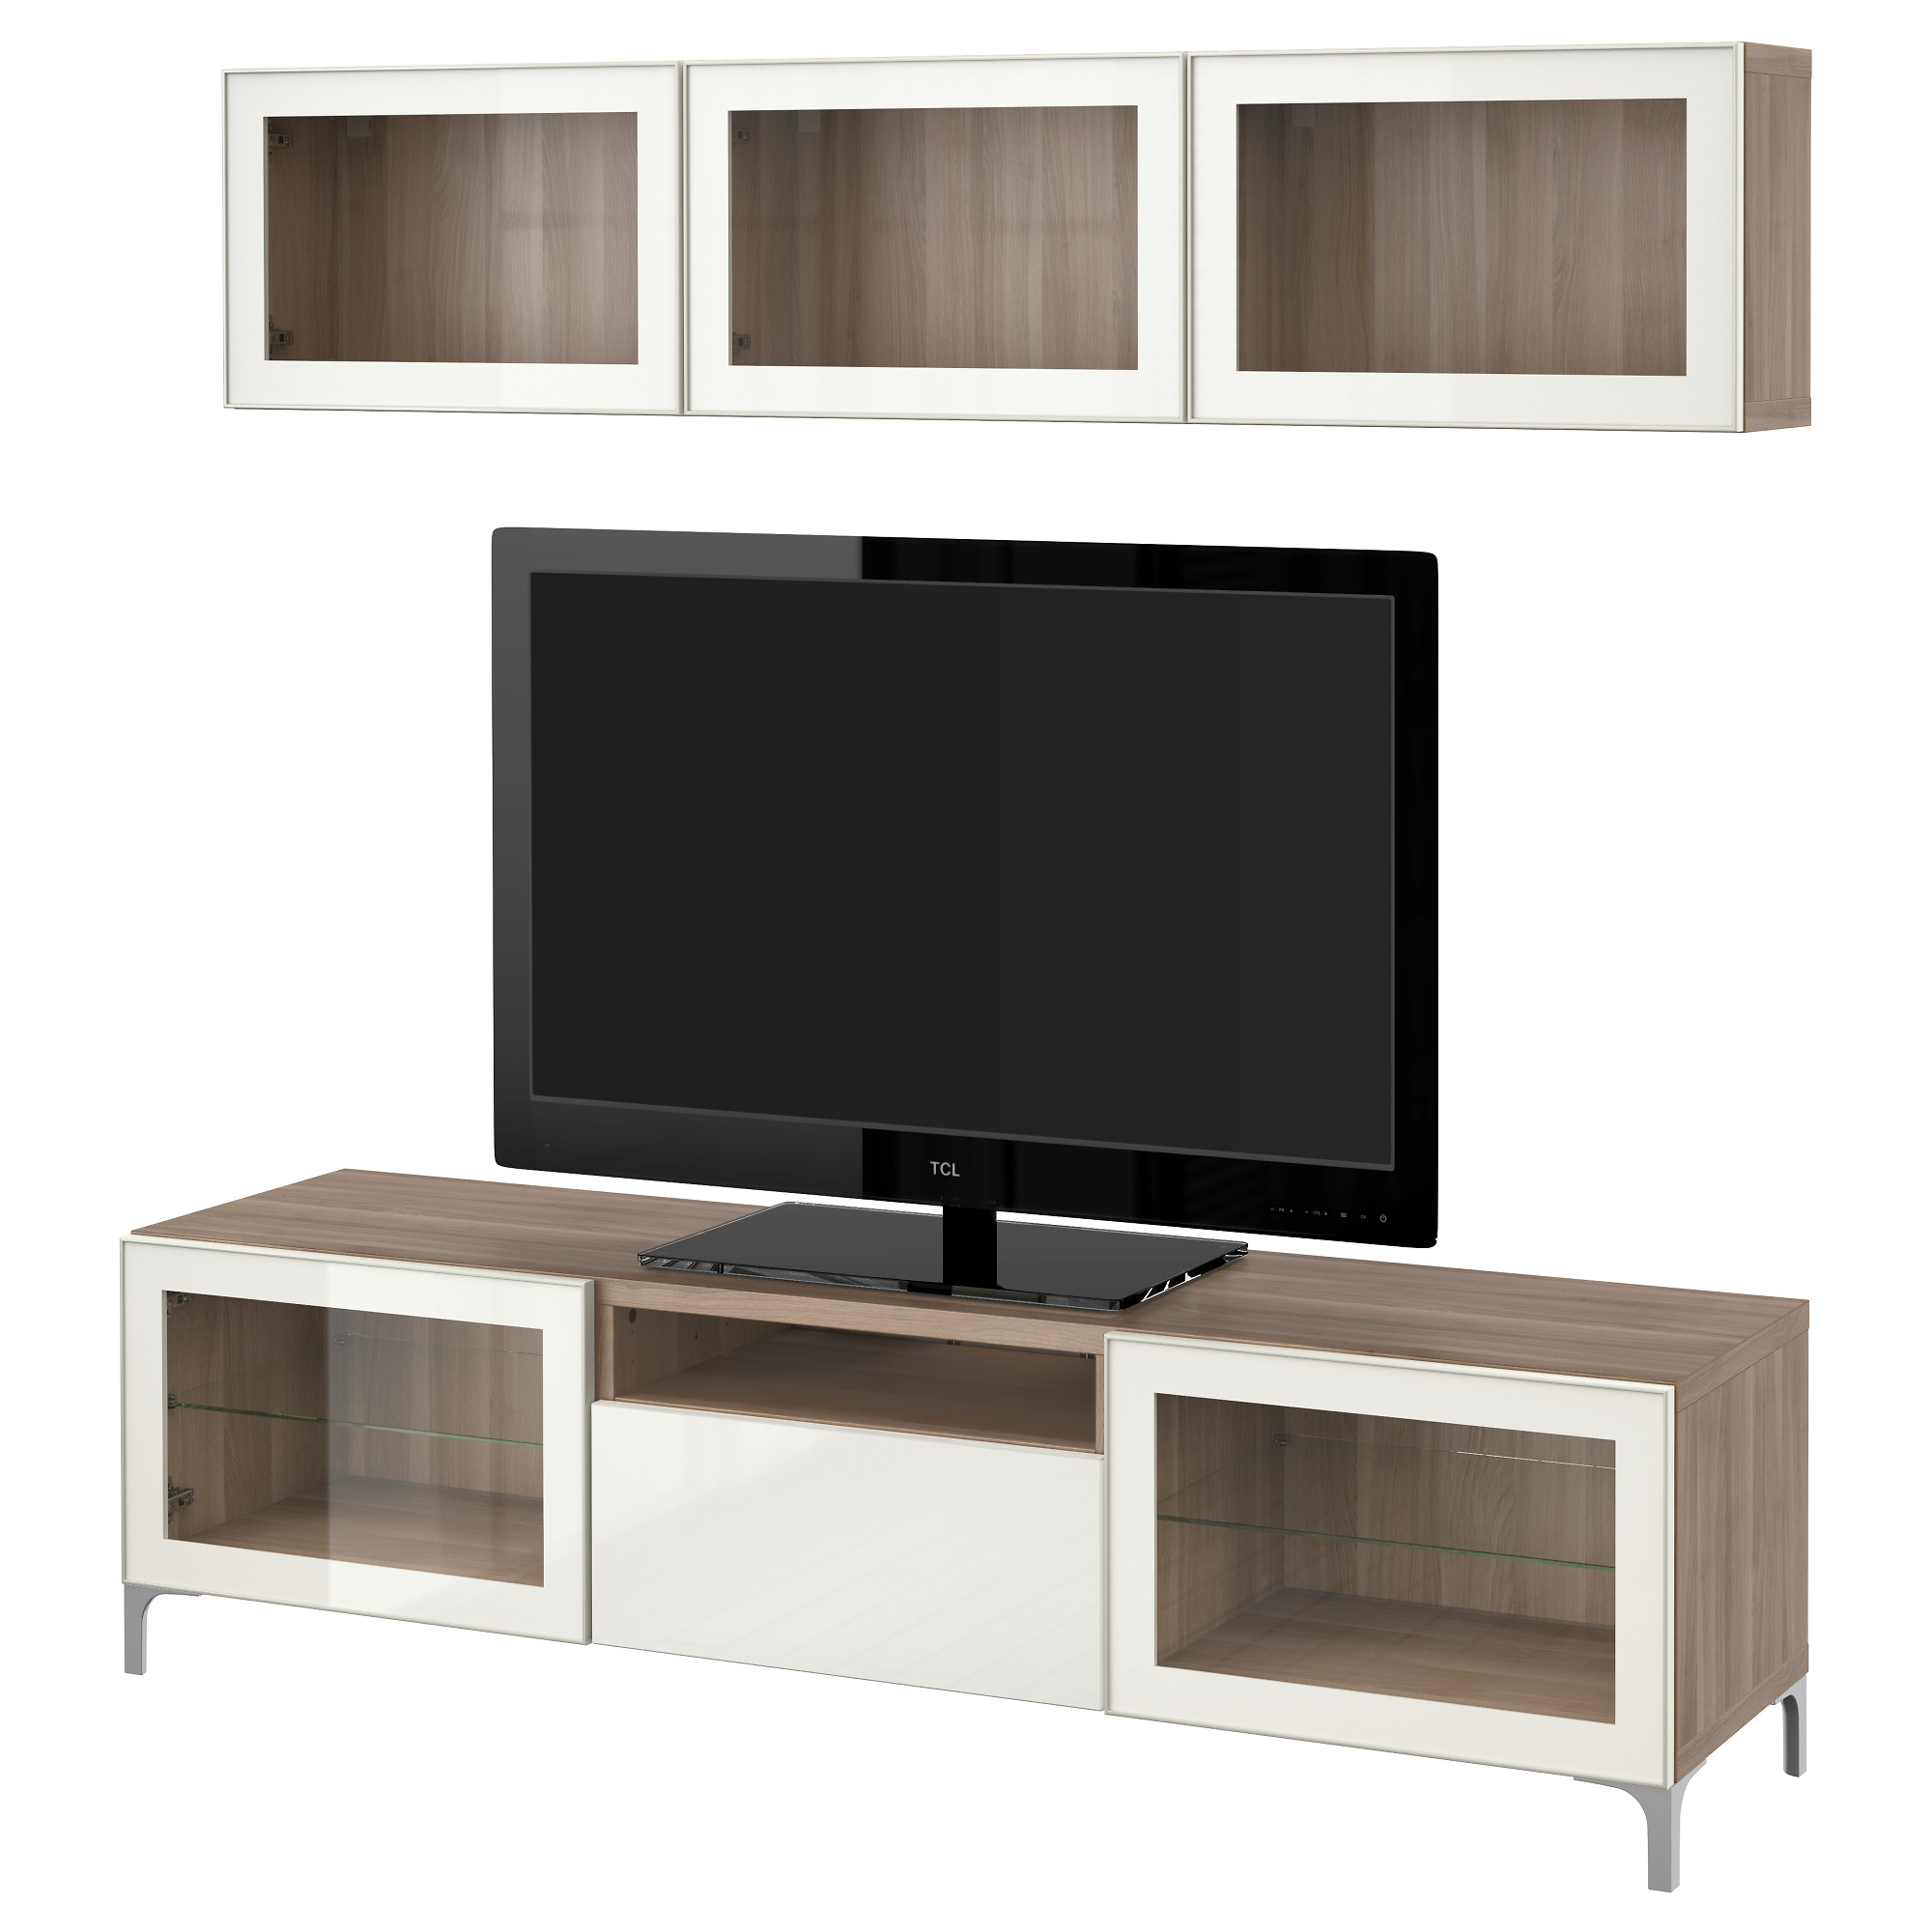 Endearing 90 media console ikea design decoration of tv for Tv media storage cabinet